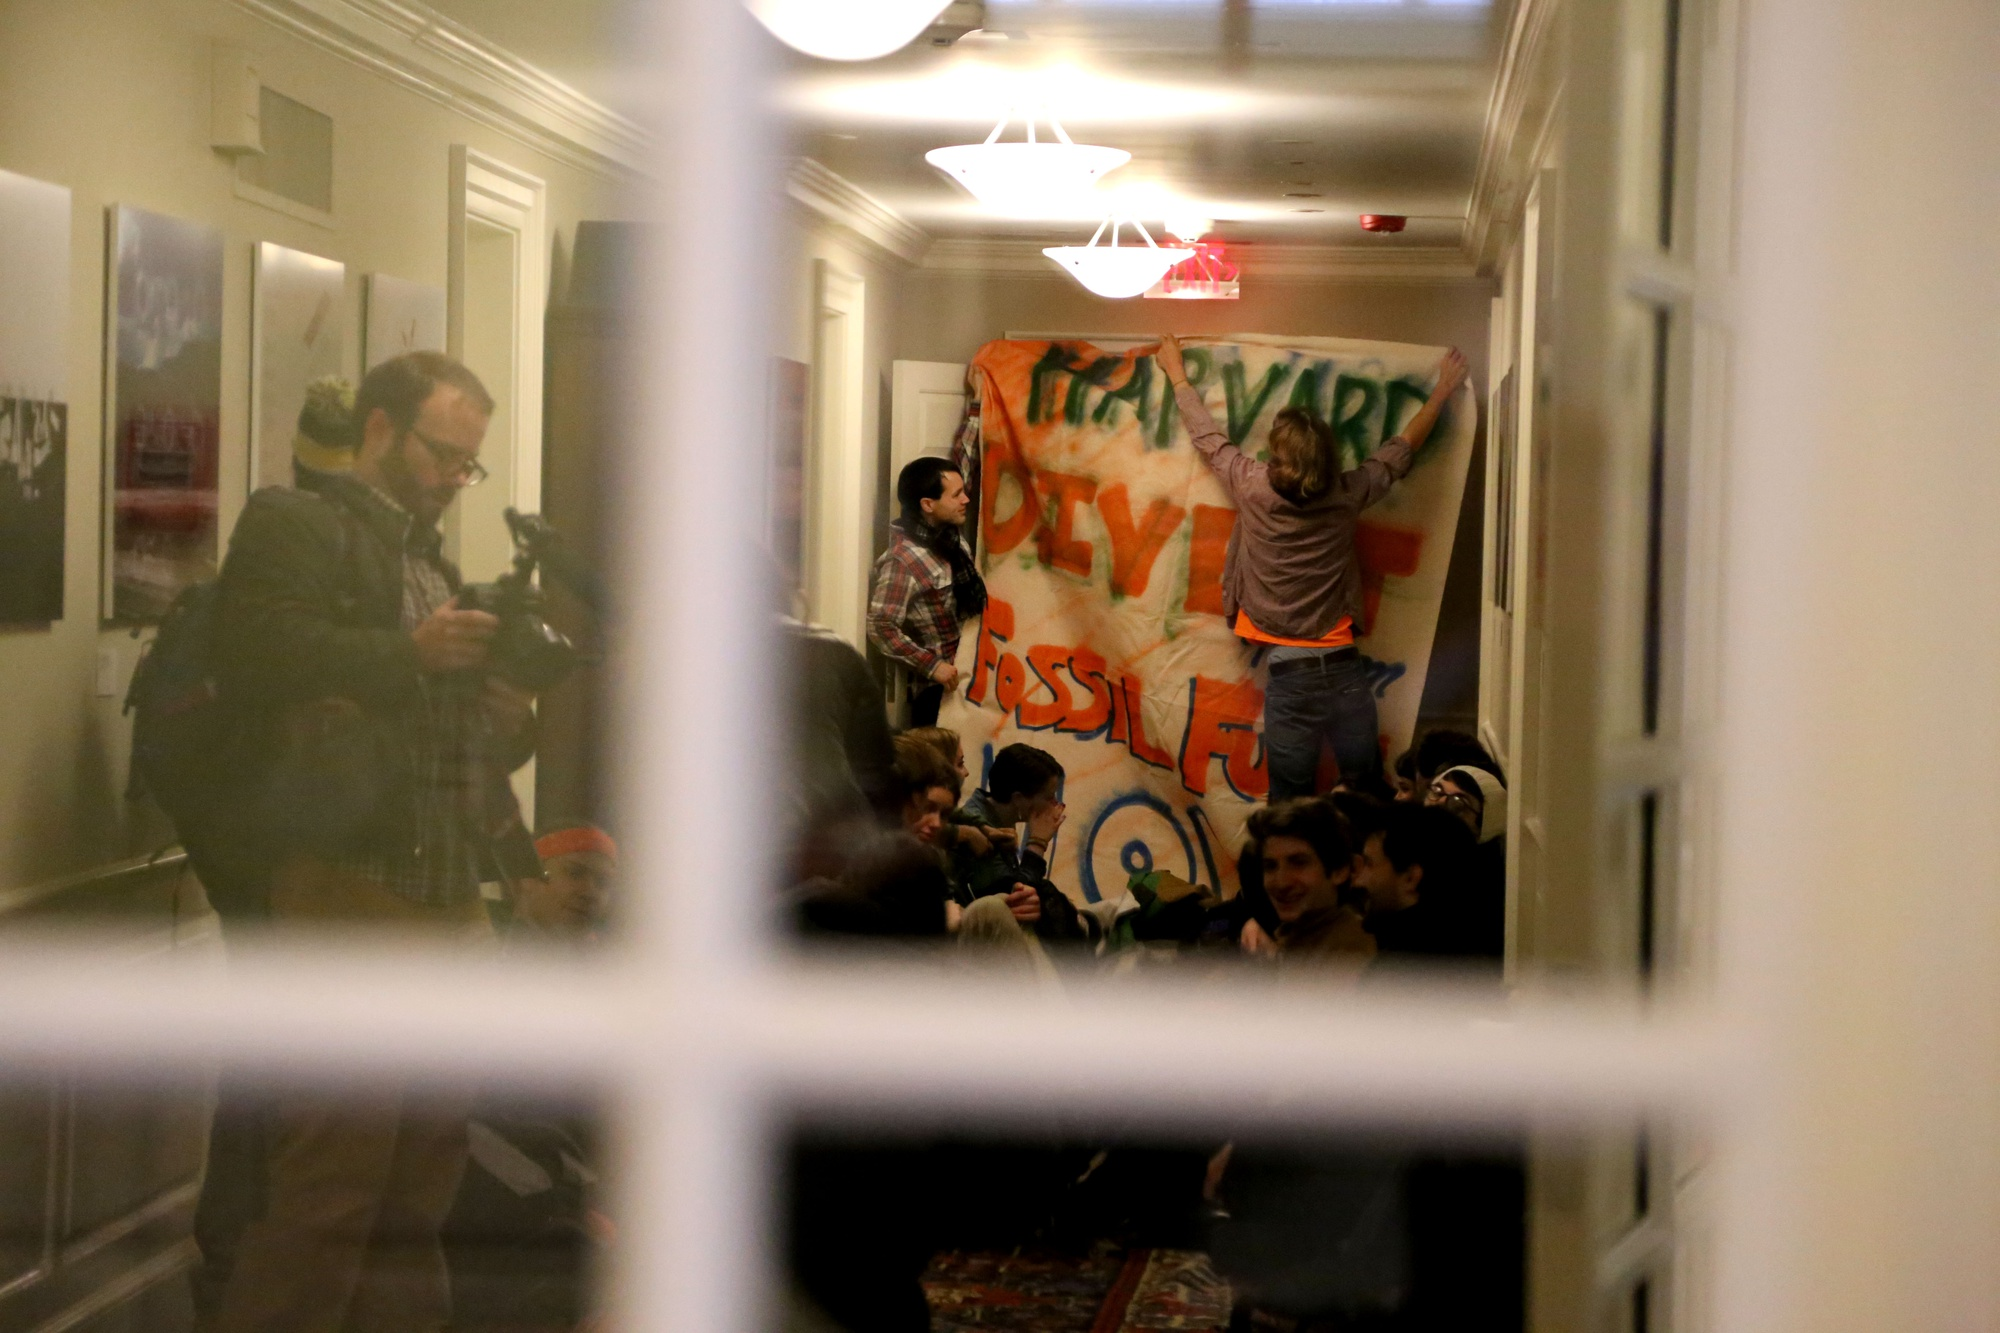 Canyon S. Woodward '15 of Divest Harvard hangs a banner during a protest in Massachusetts Hall. A group of students rushed into the building that houses the University president's office this morning.